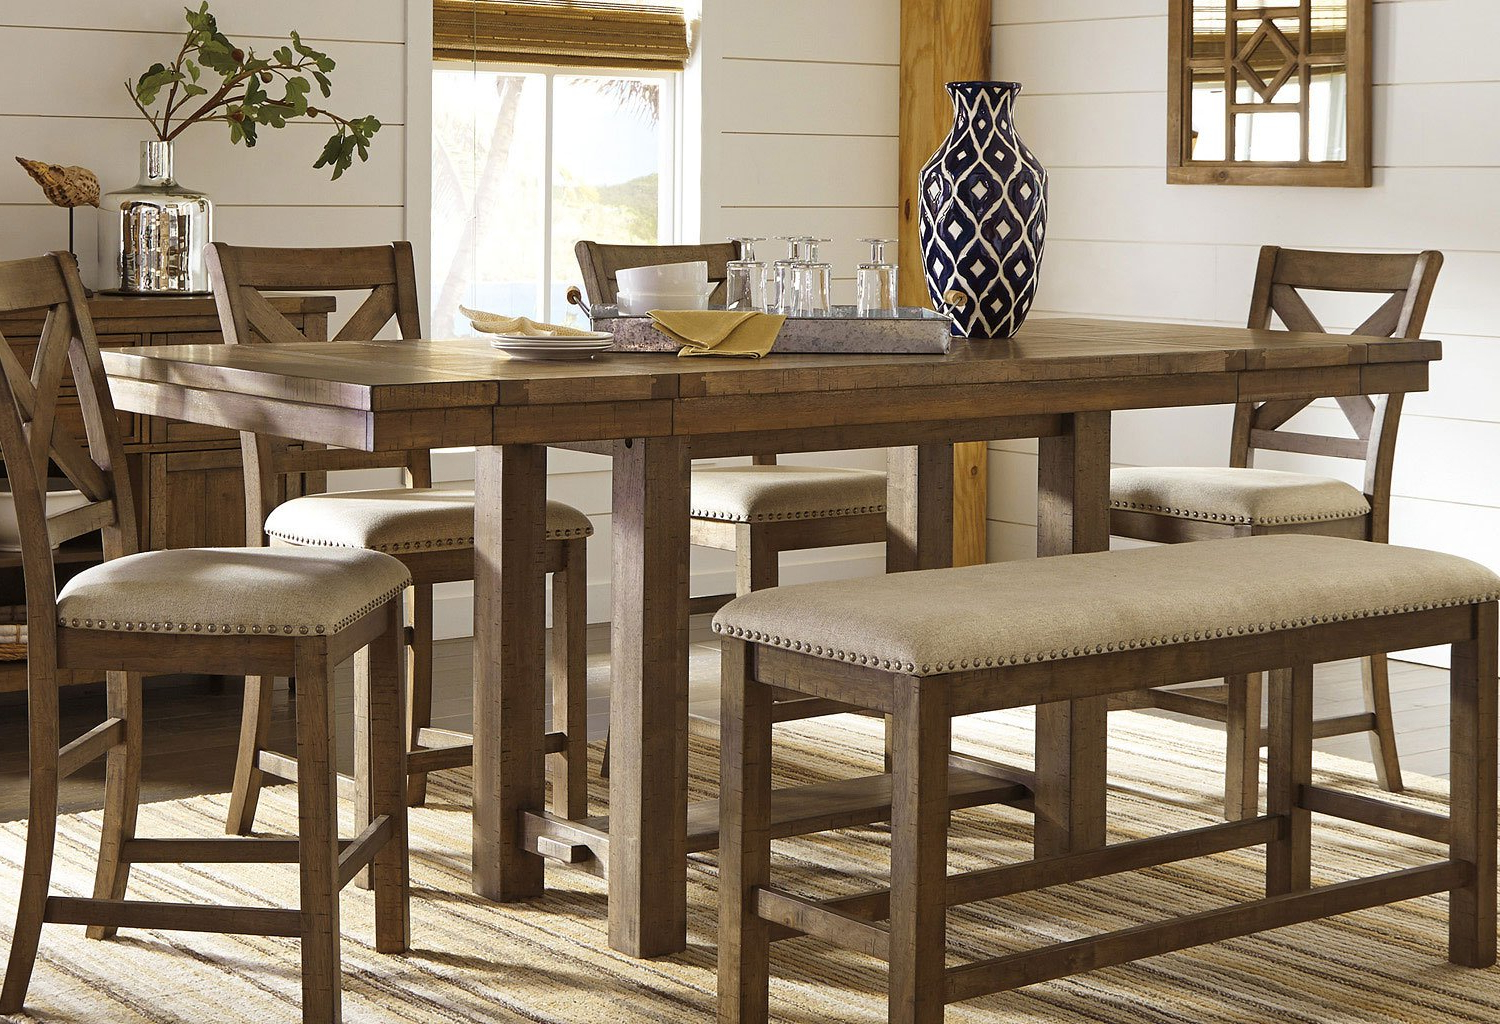 Dallin Bar Height Dining Tables For Most Recent Moriville Counter Height Dining Table Signature Design, (View 8 of 20)